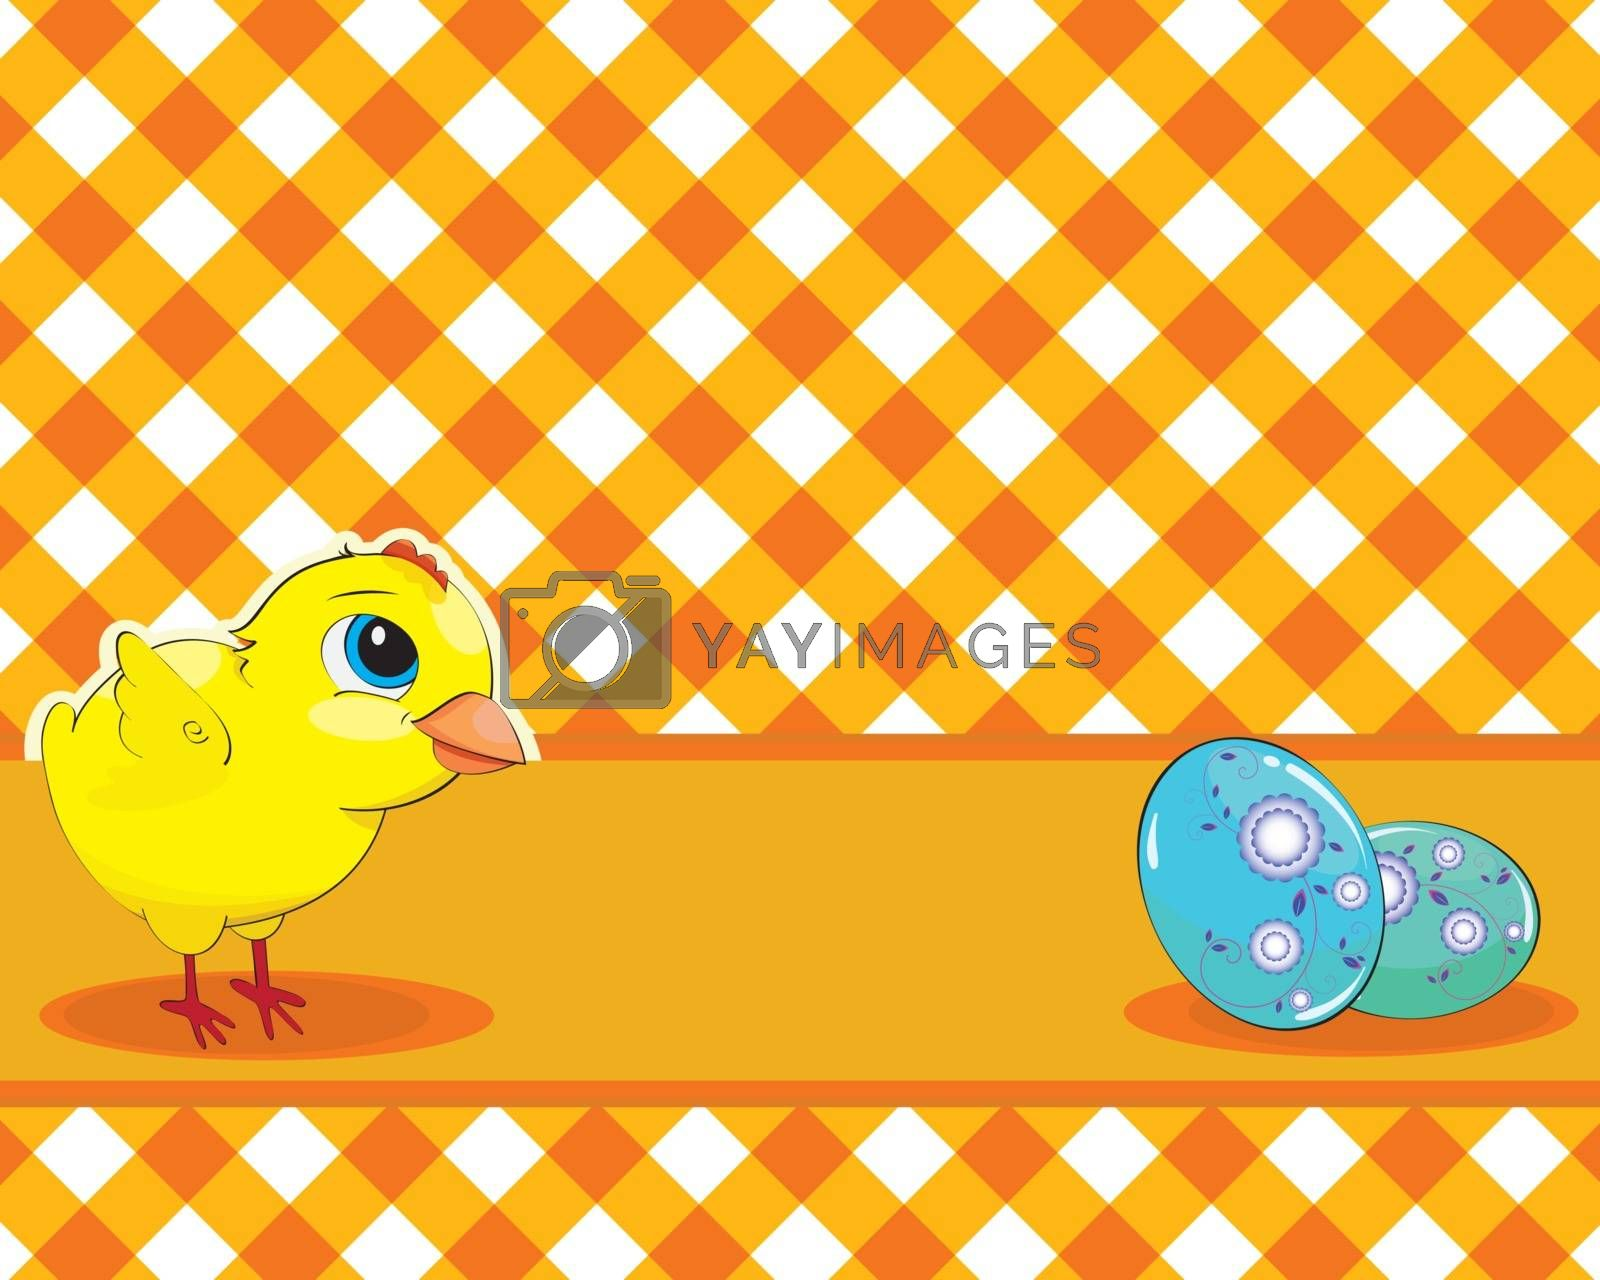 Vector illustration. Chicken and painted eggs on a checkered background. Easter